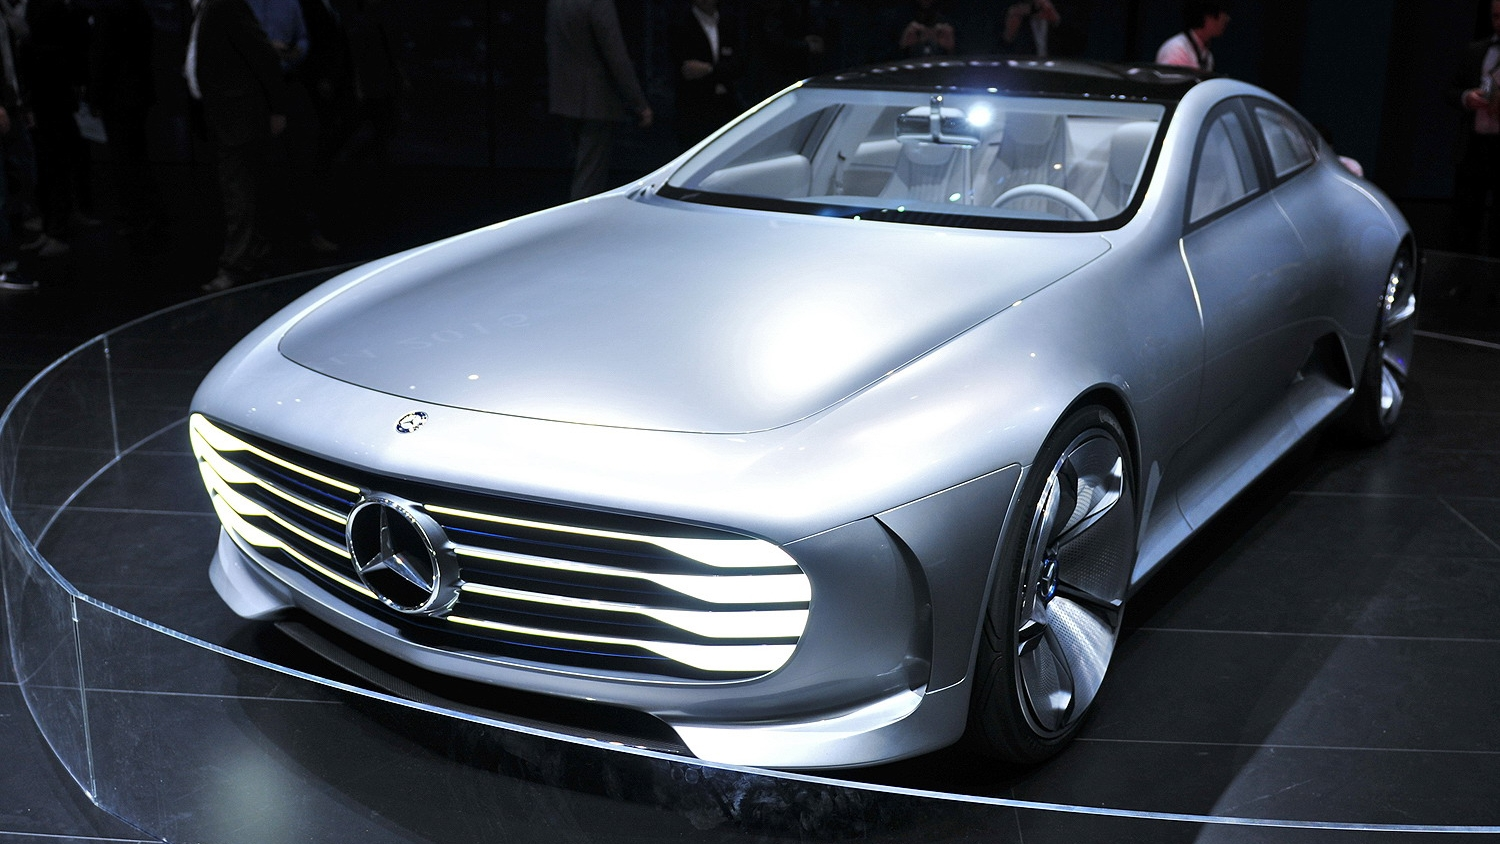 benz mercedes concept iaa speed cars showcar luxusbenz topspeed